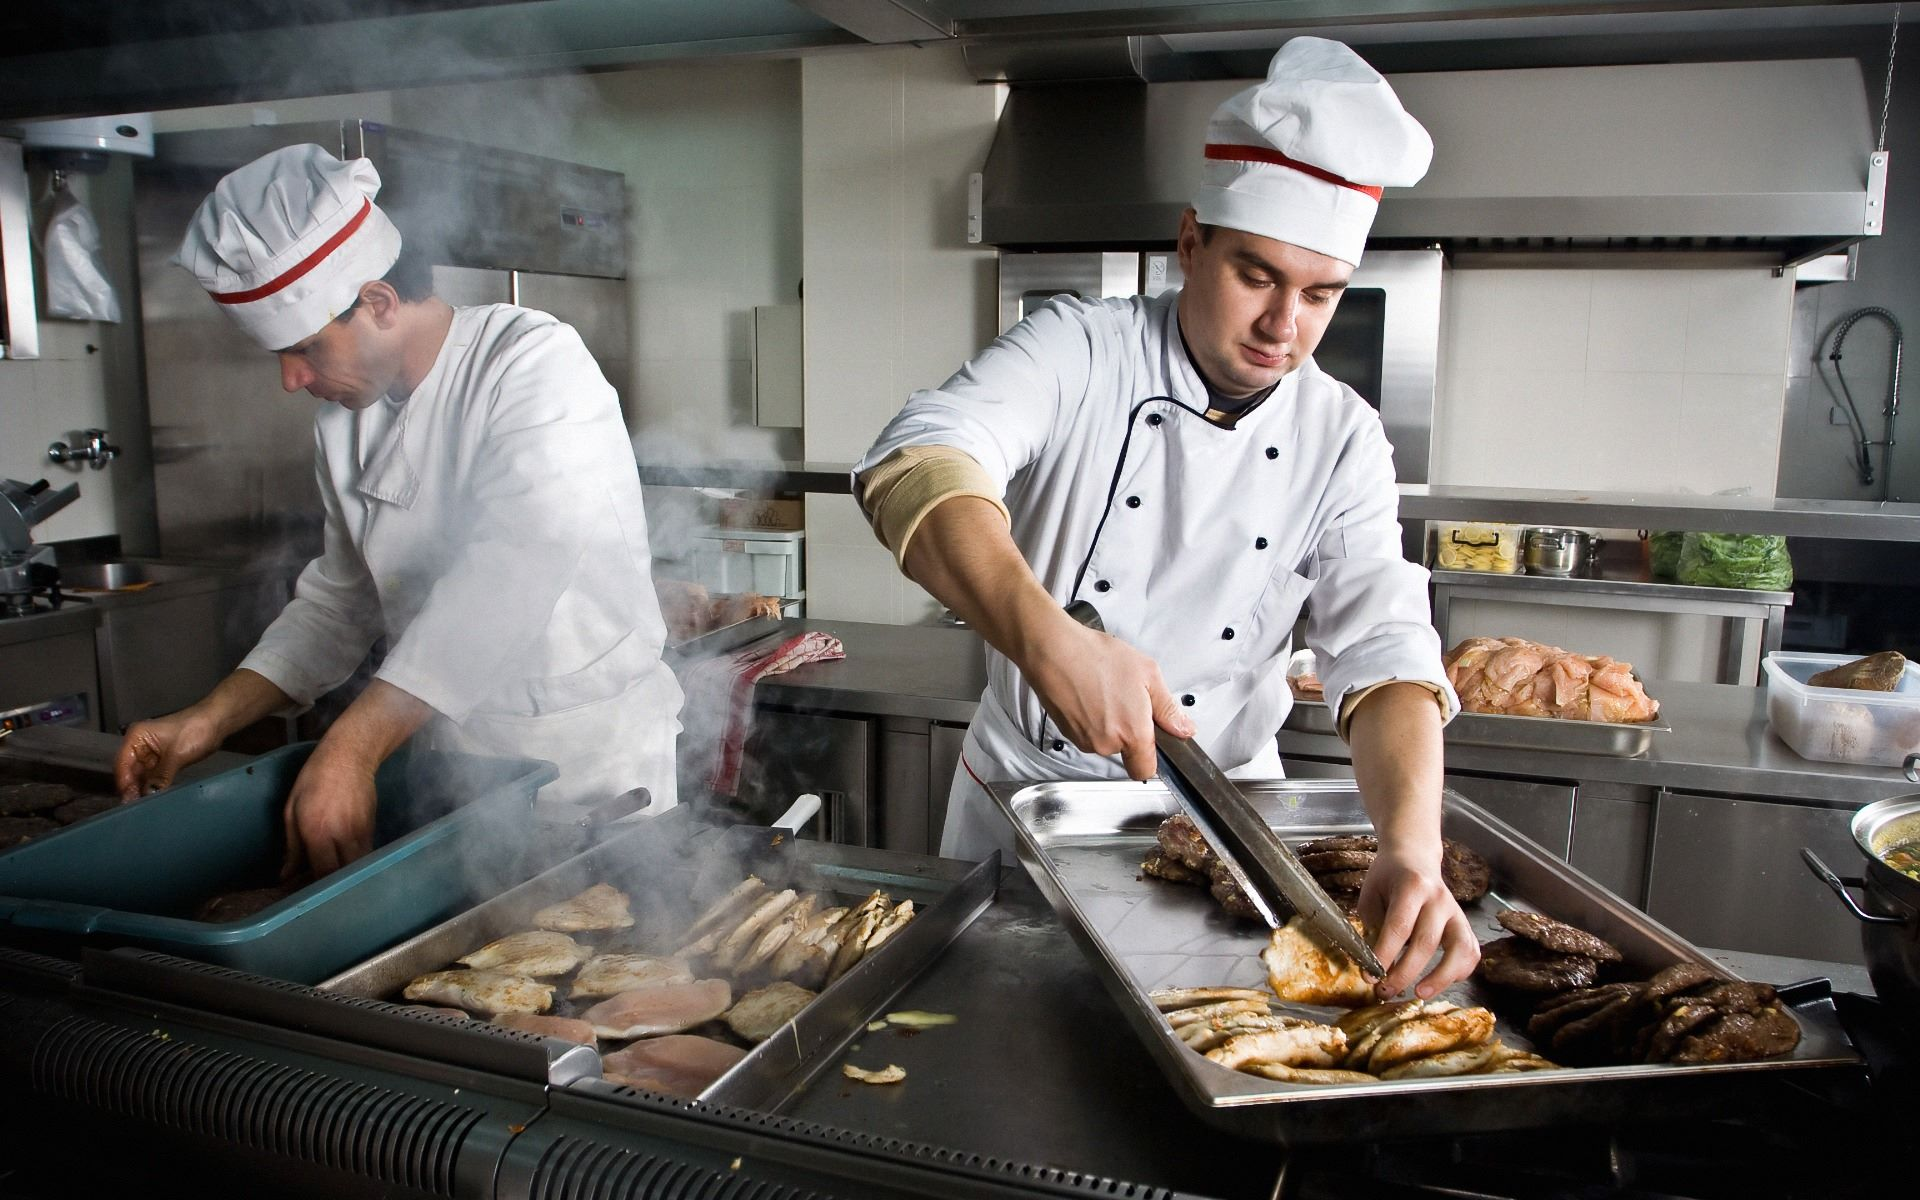 Chefs working in a kitchen preparing food